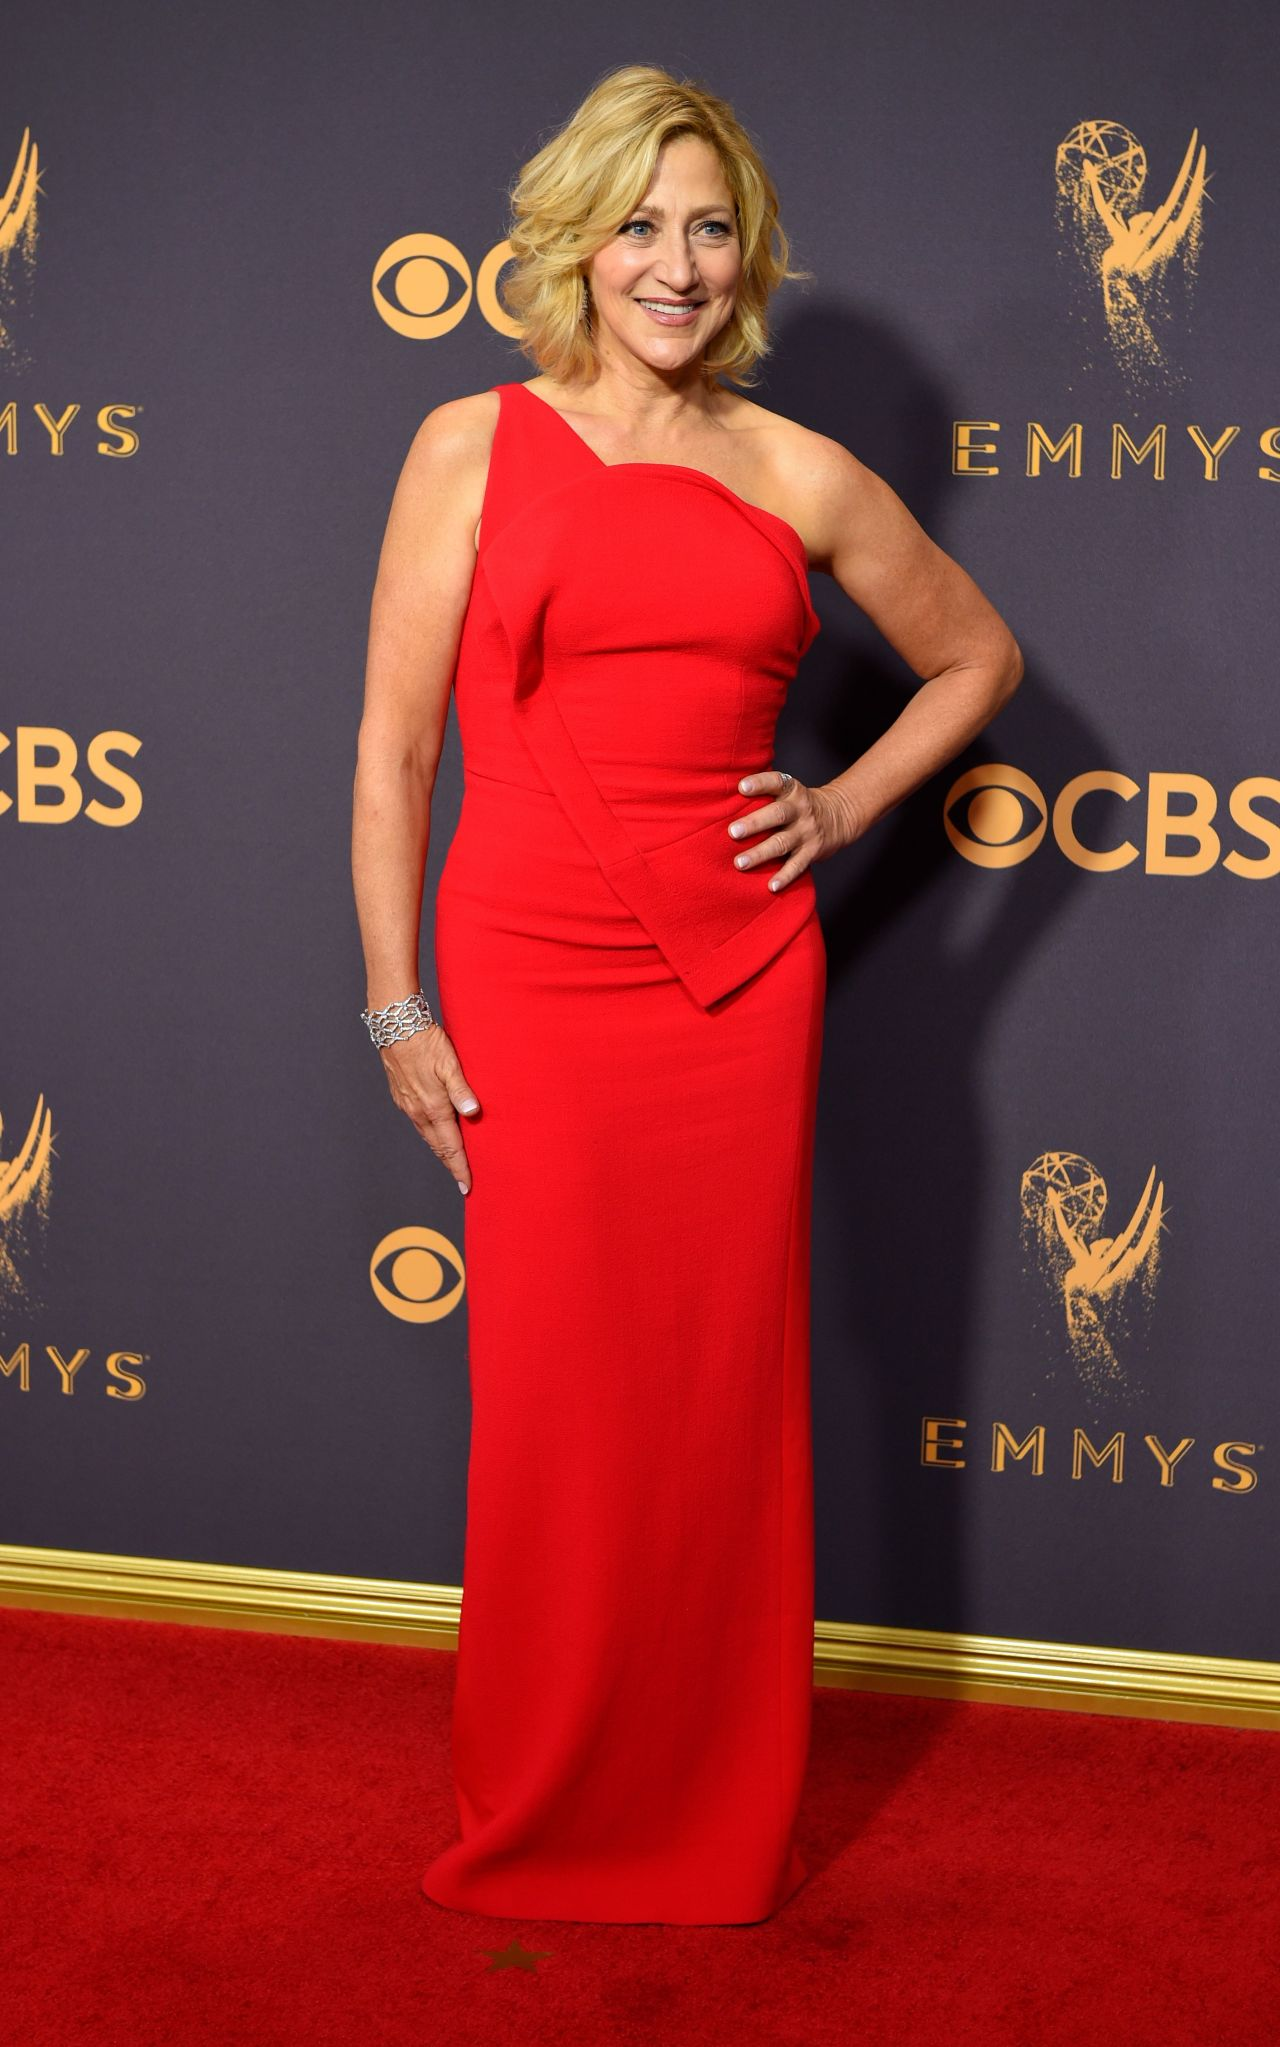 Edie Falco Emmy Awards In Los Angeles 09 17 2017